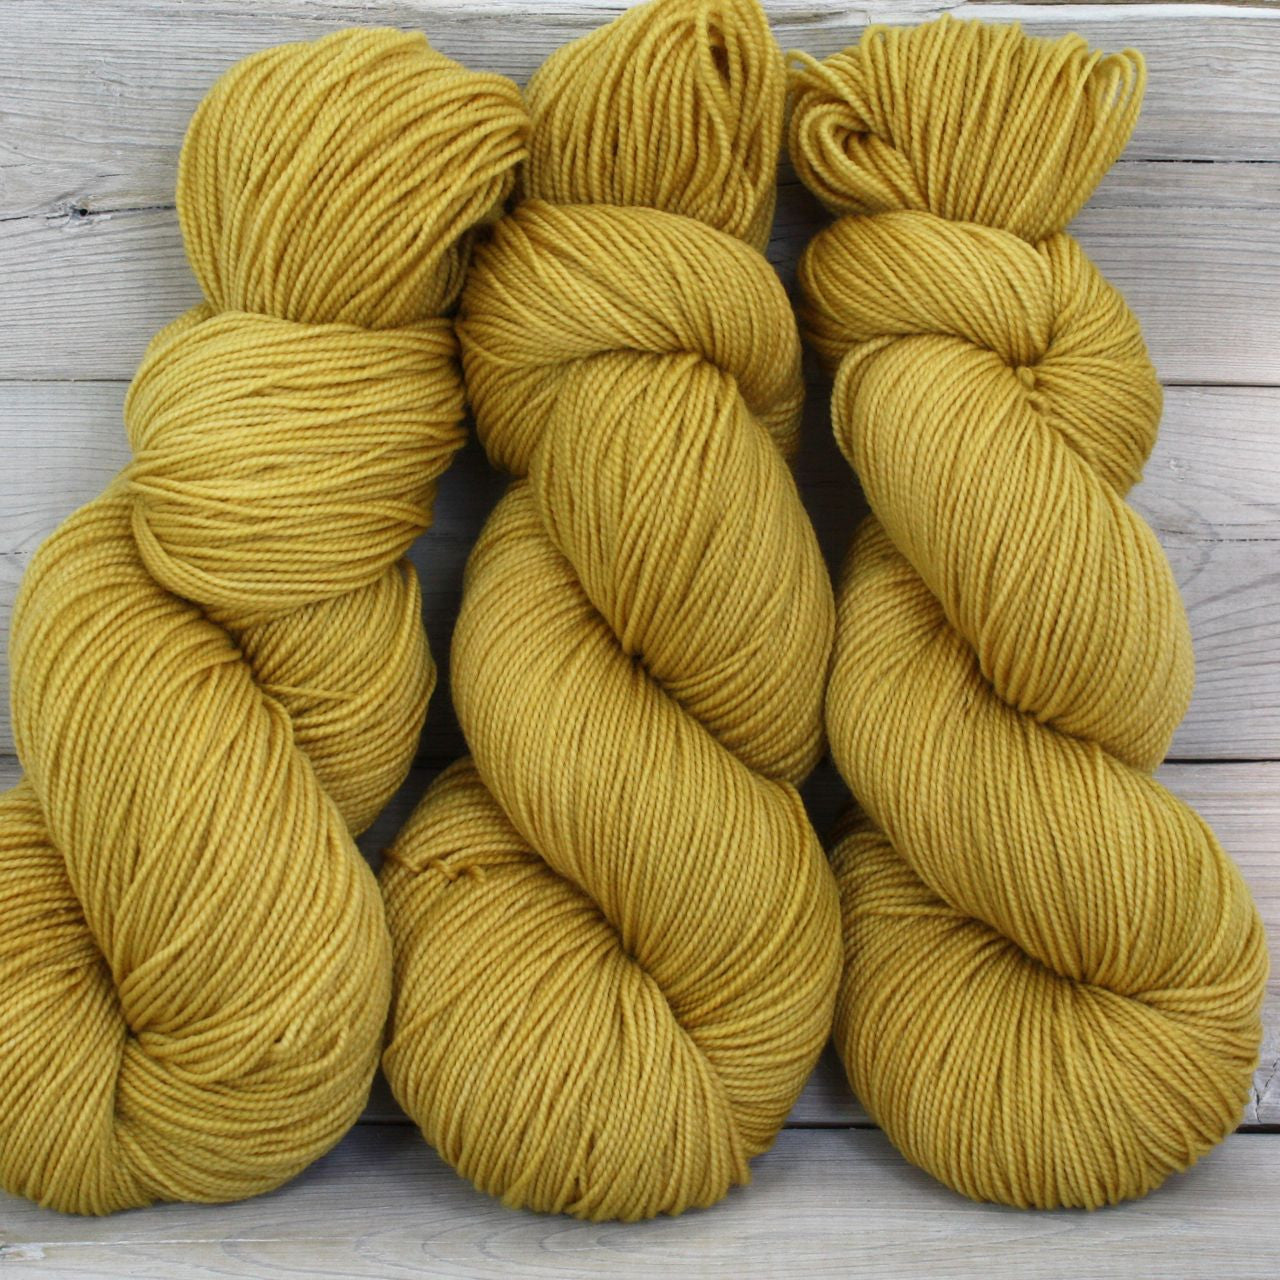 Celeste Yarn | Colorway: Honeycomb